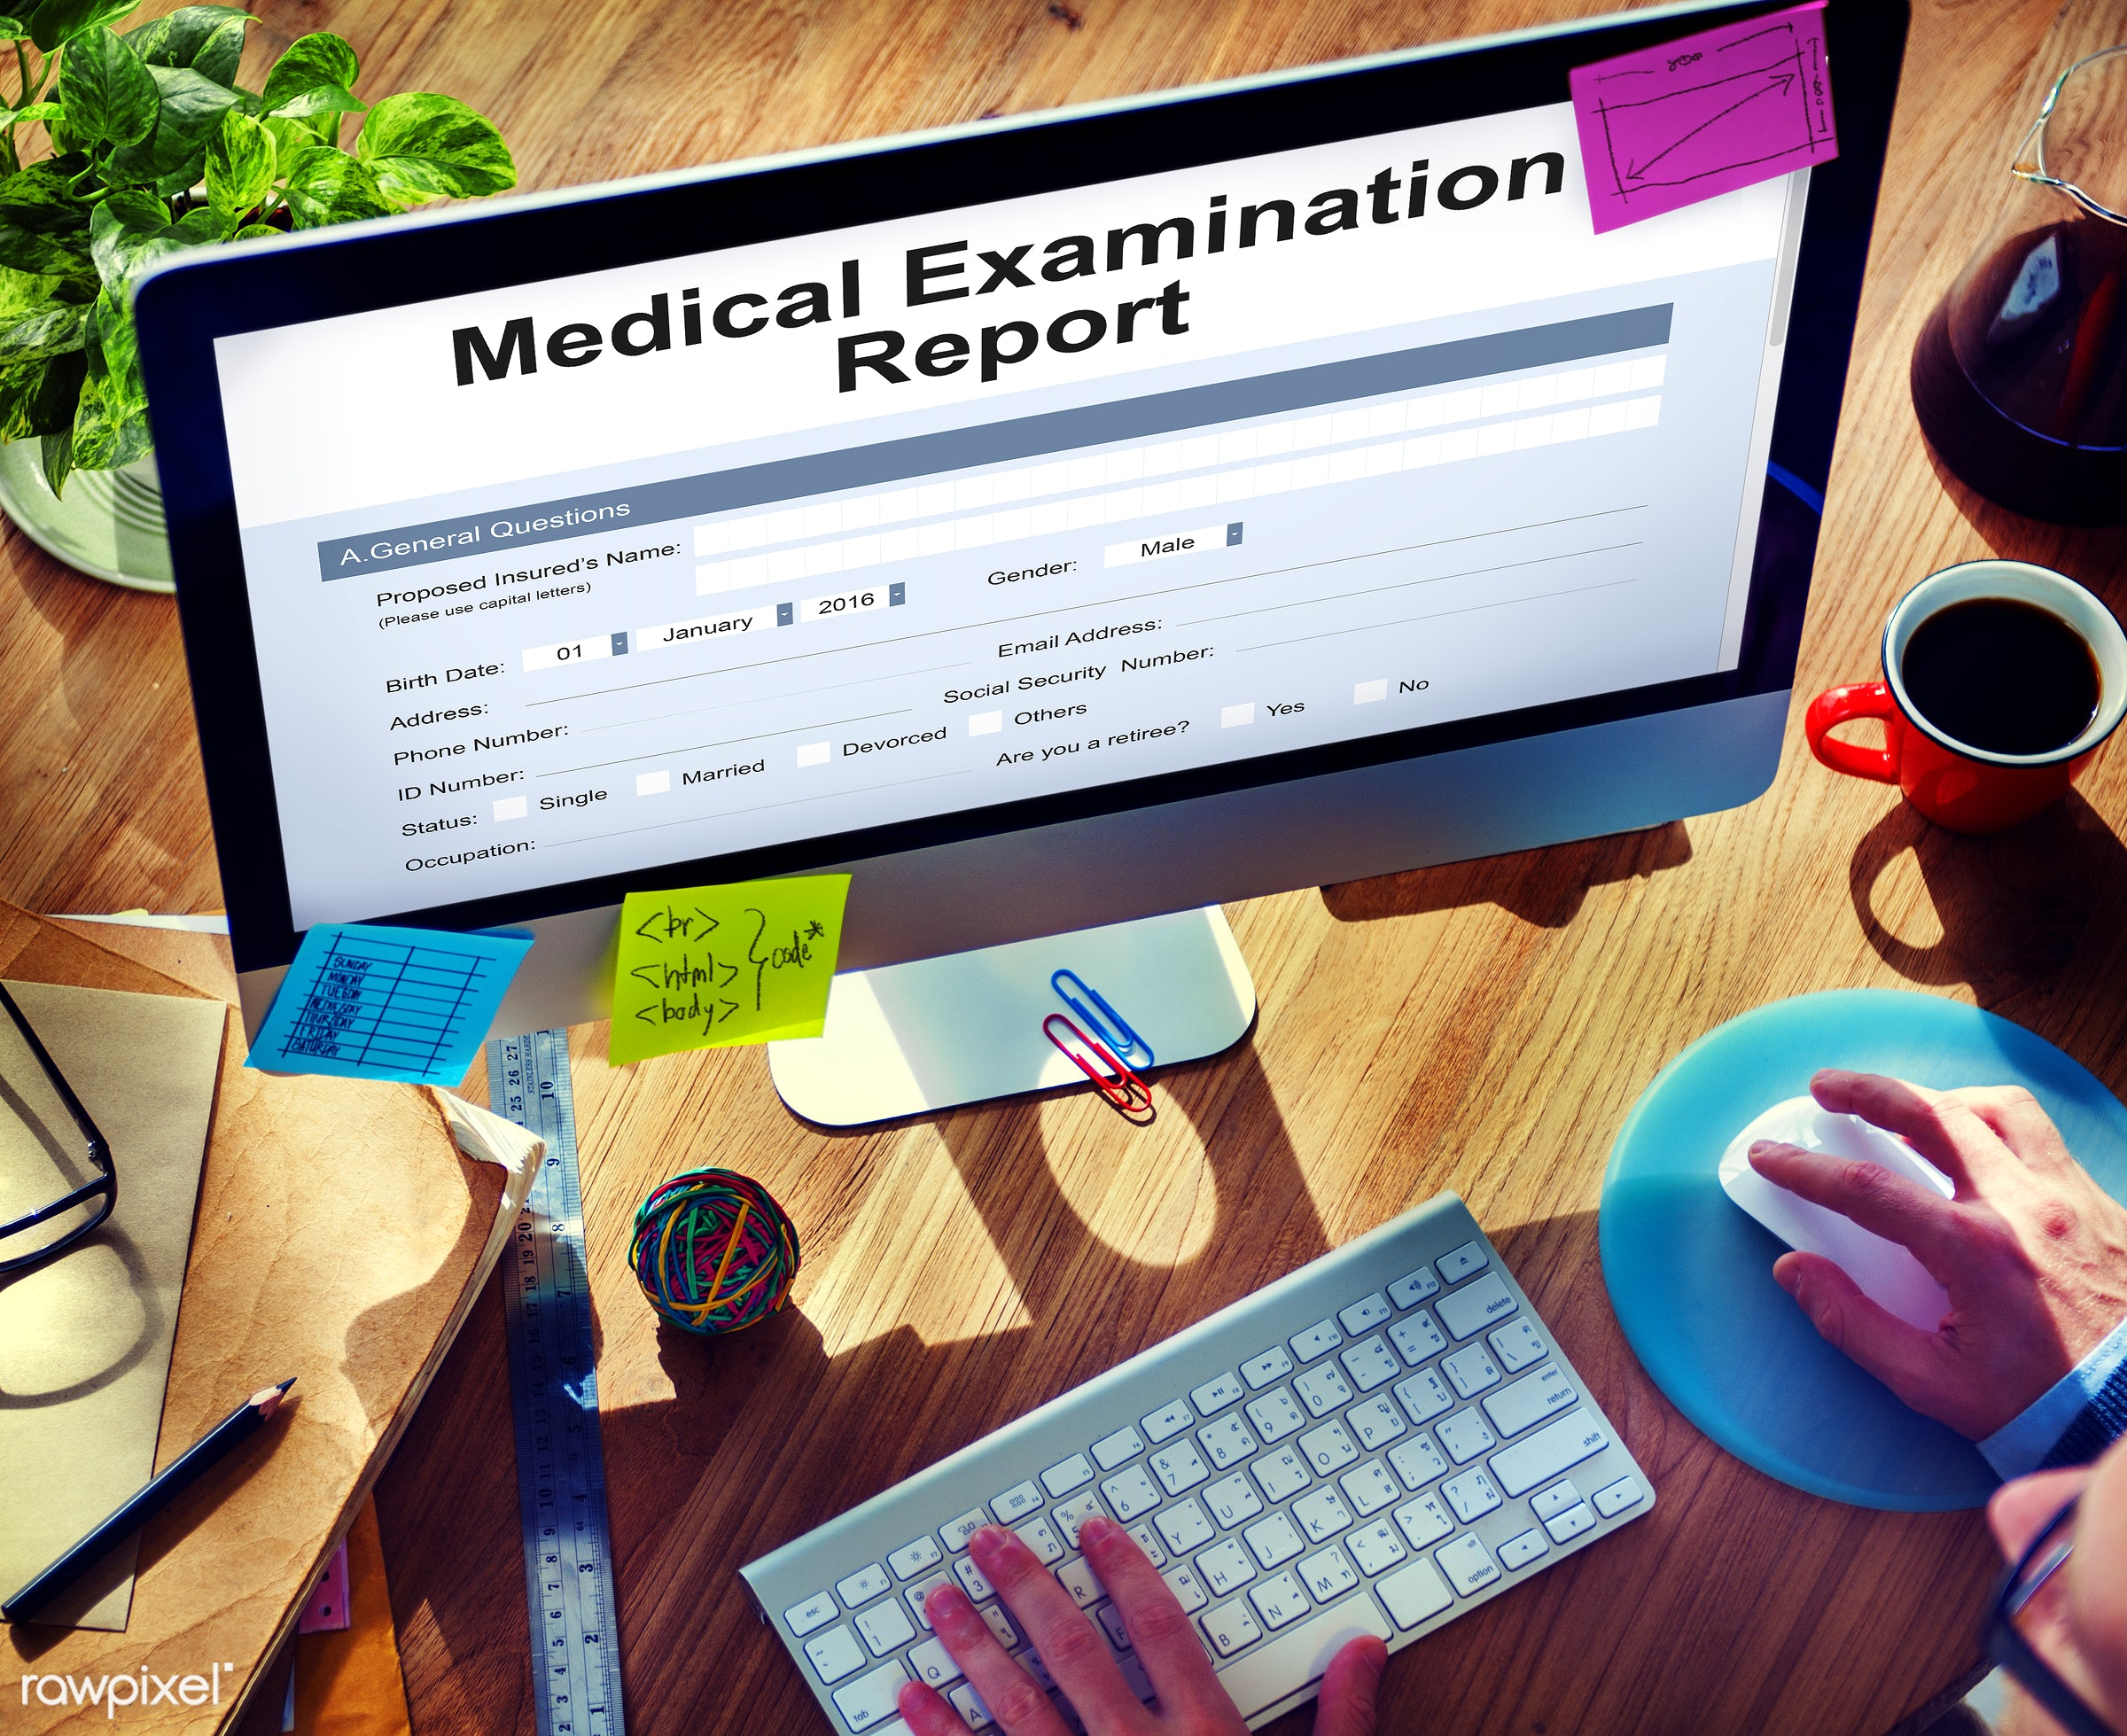 MEdical Examination Report Patient Record Concept - application, browsing, check, clinic, computer, data, devices, diagnosis...